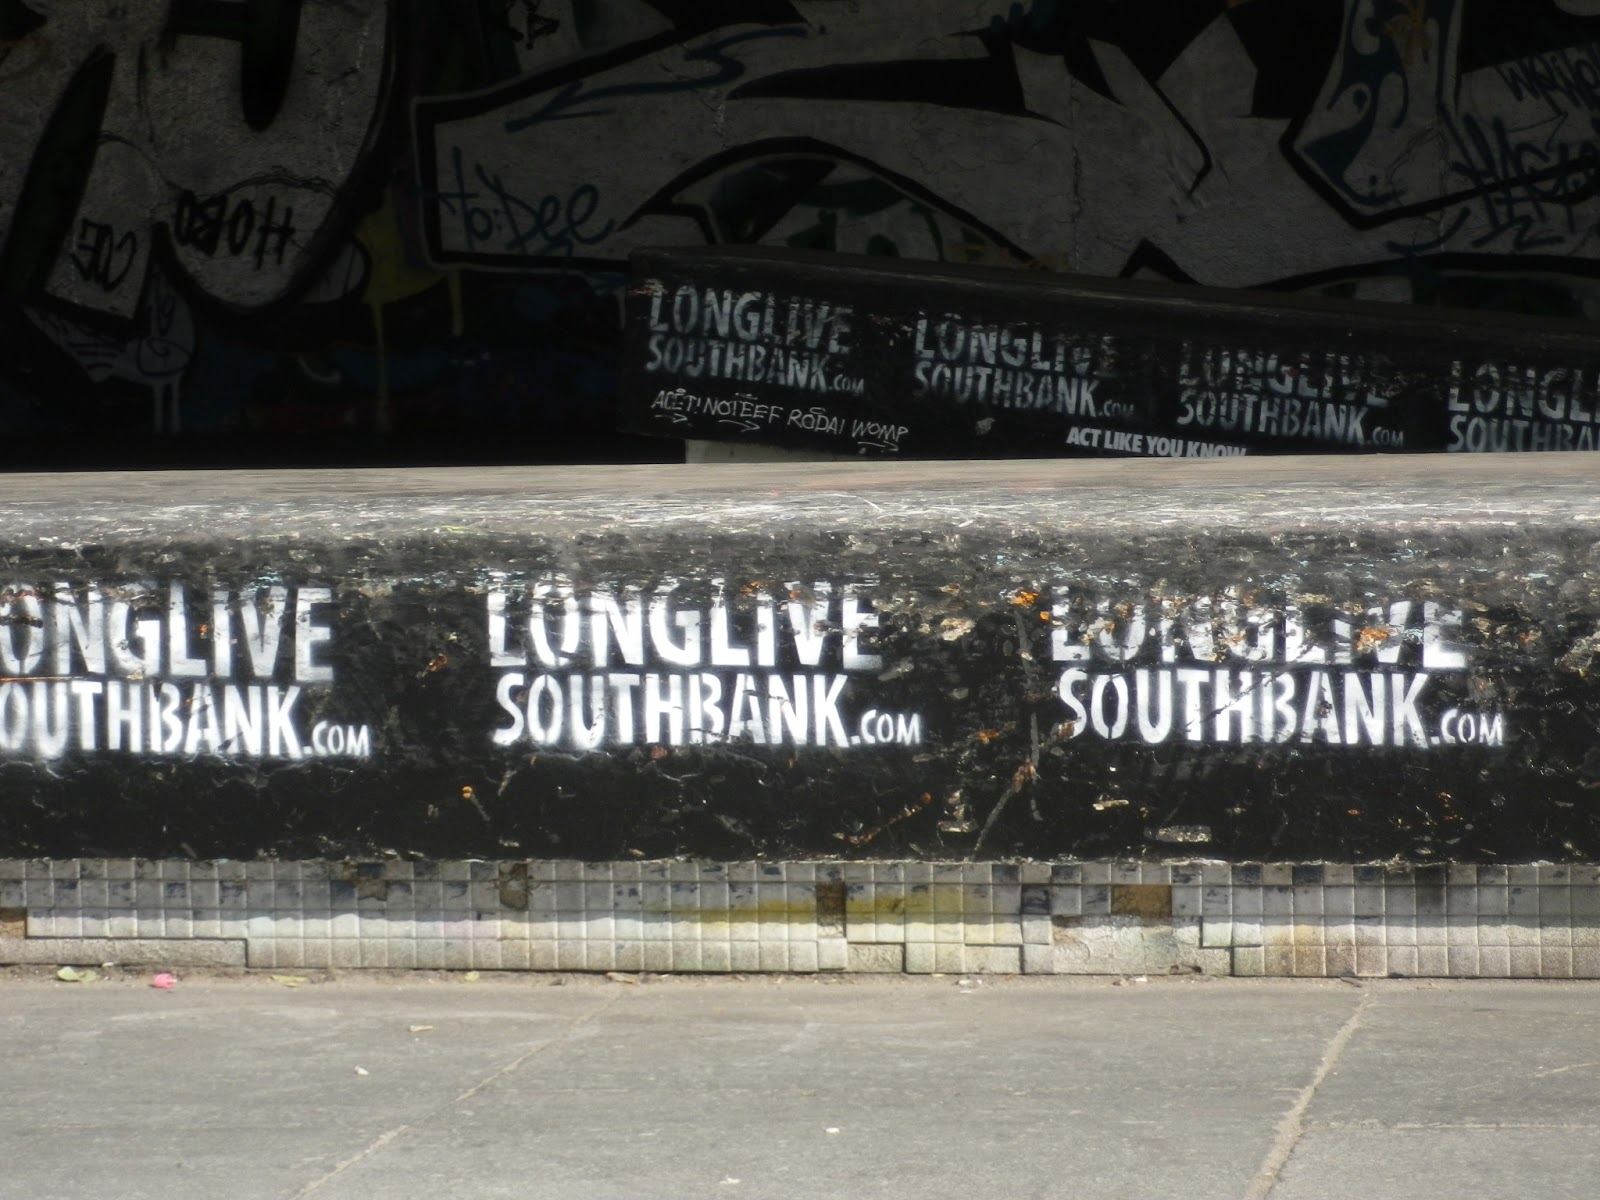 essay on journalism necess city long live southbank a photo  necess city long live southbank a photo journalism essay long live southbank a photo journalism essay